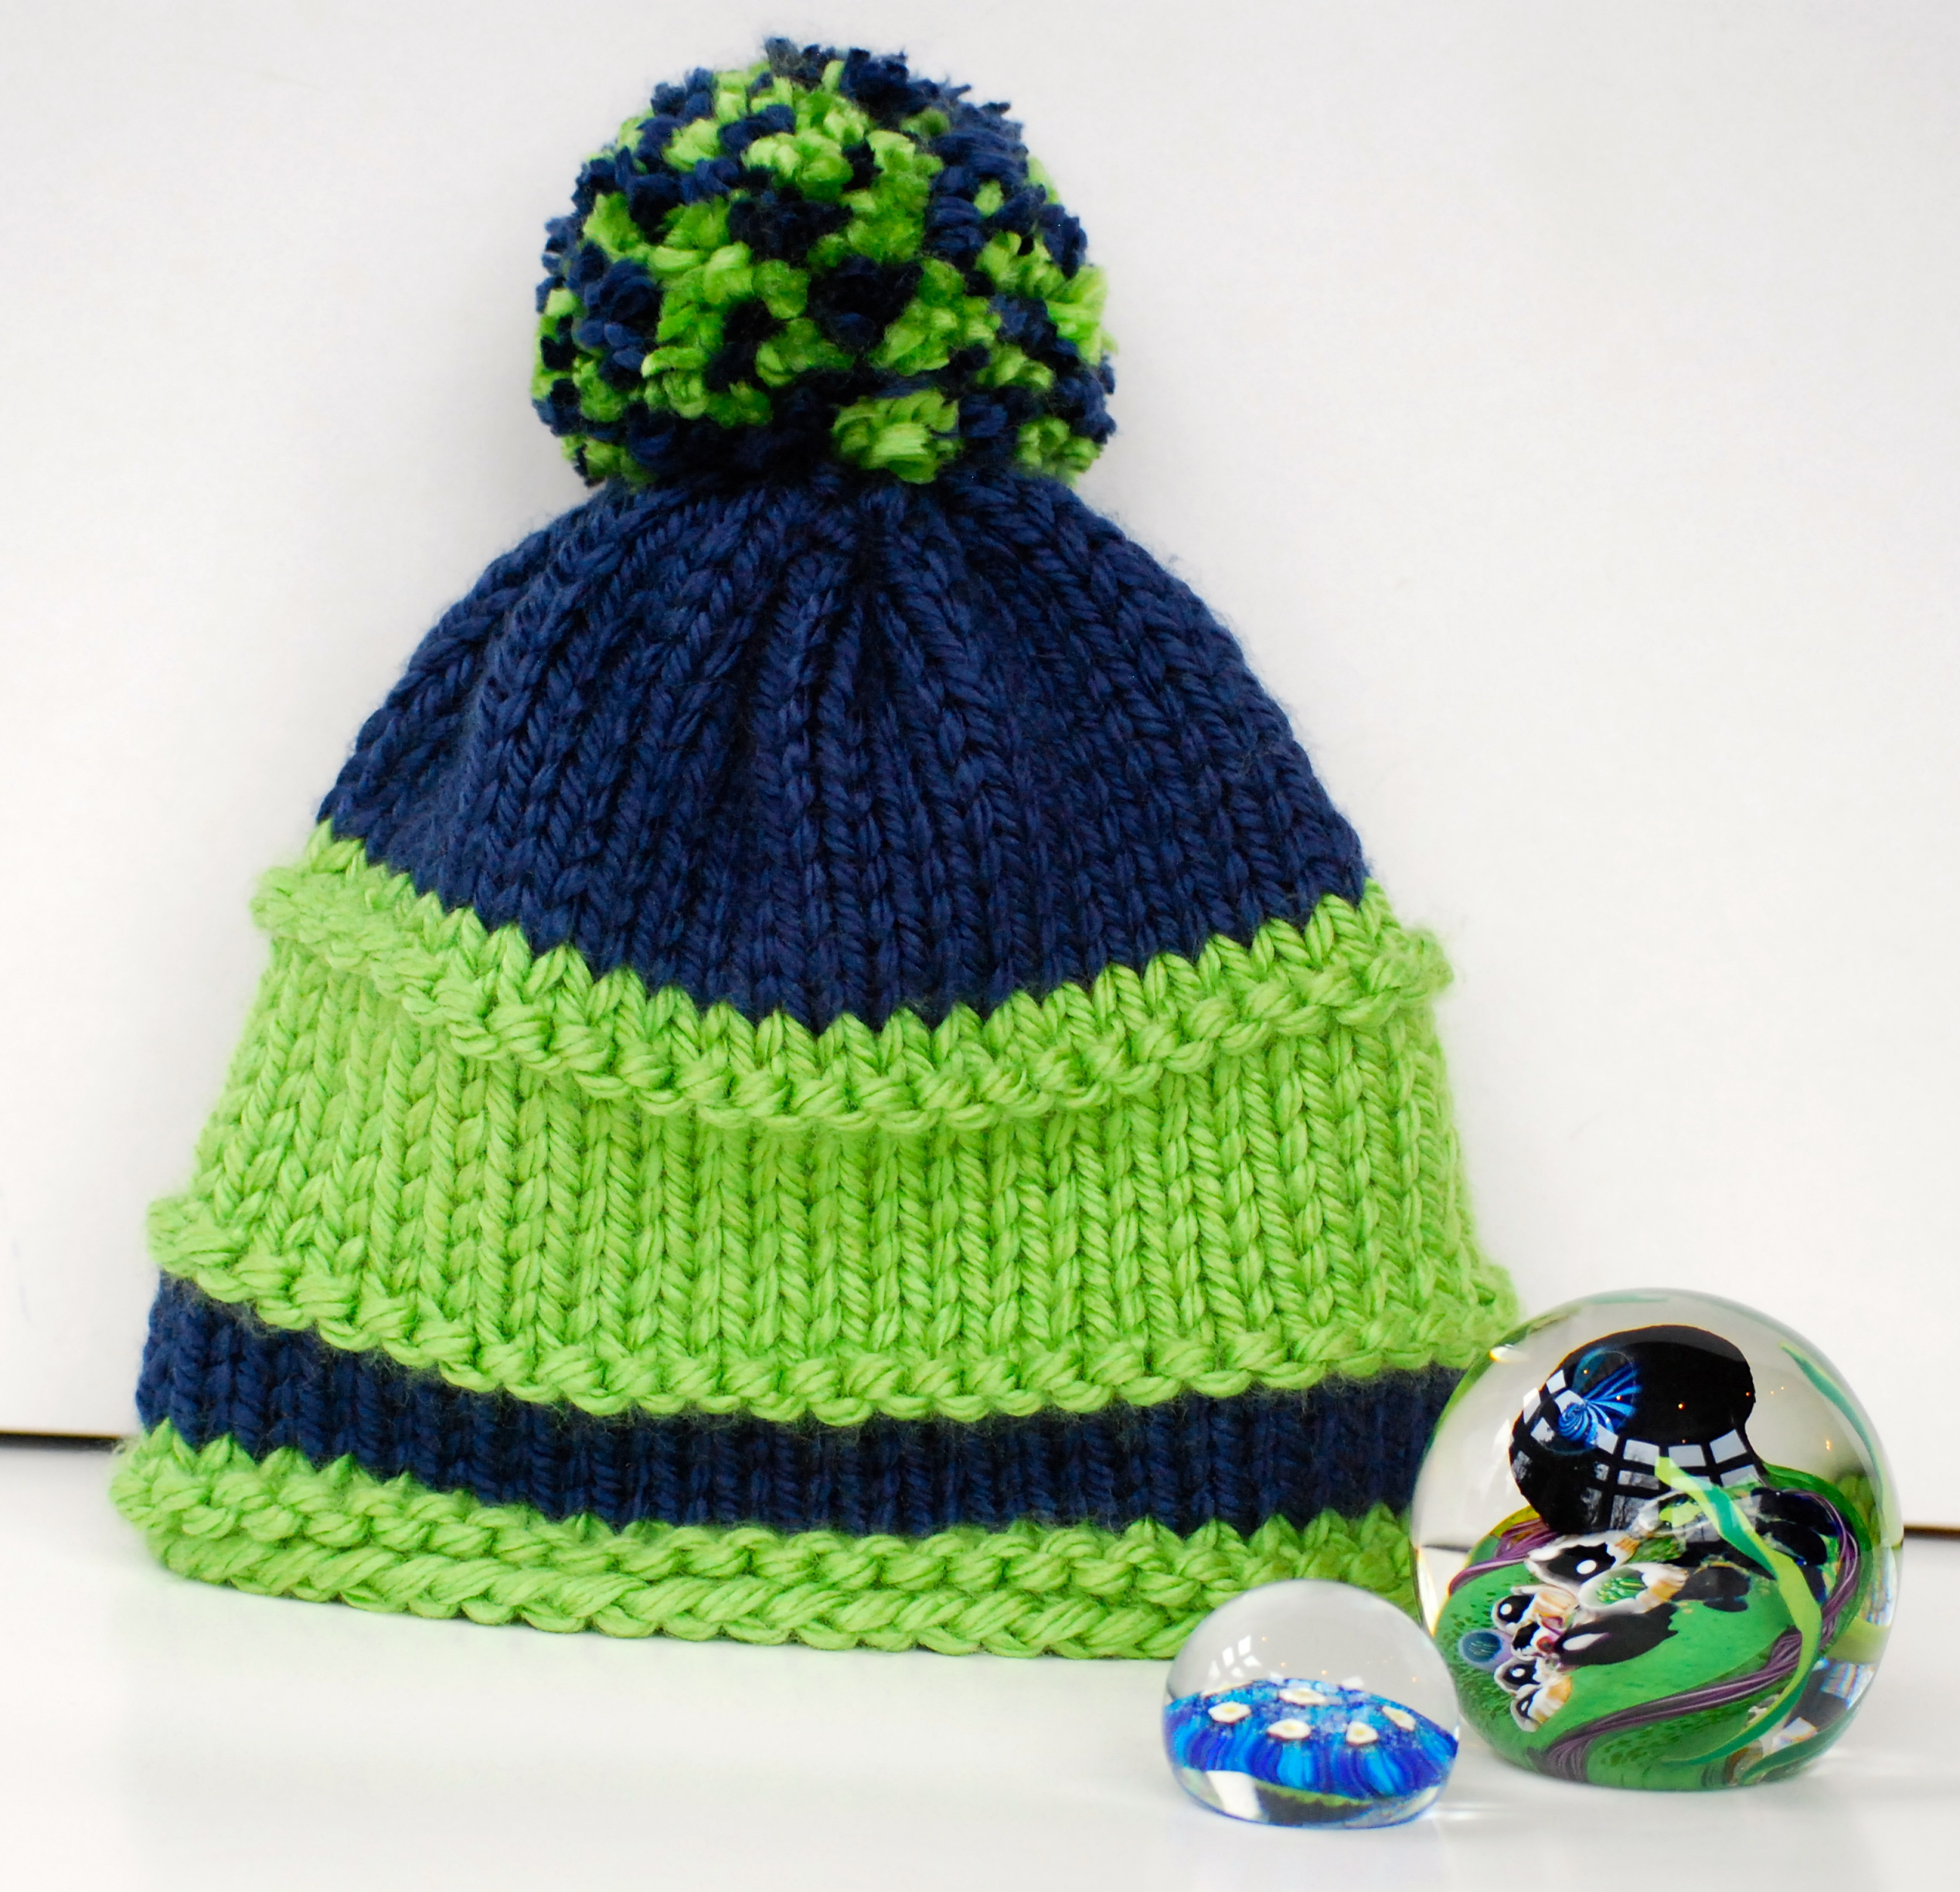 0dfb3920 Navy & Green Seattle Seahawks Beanie -12th Man Hat For Adults, Kids or  Babies - With a Pom Pom